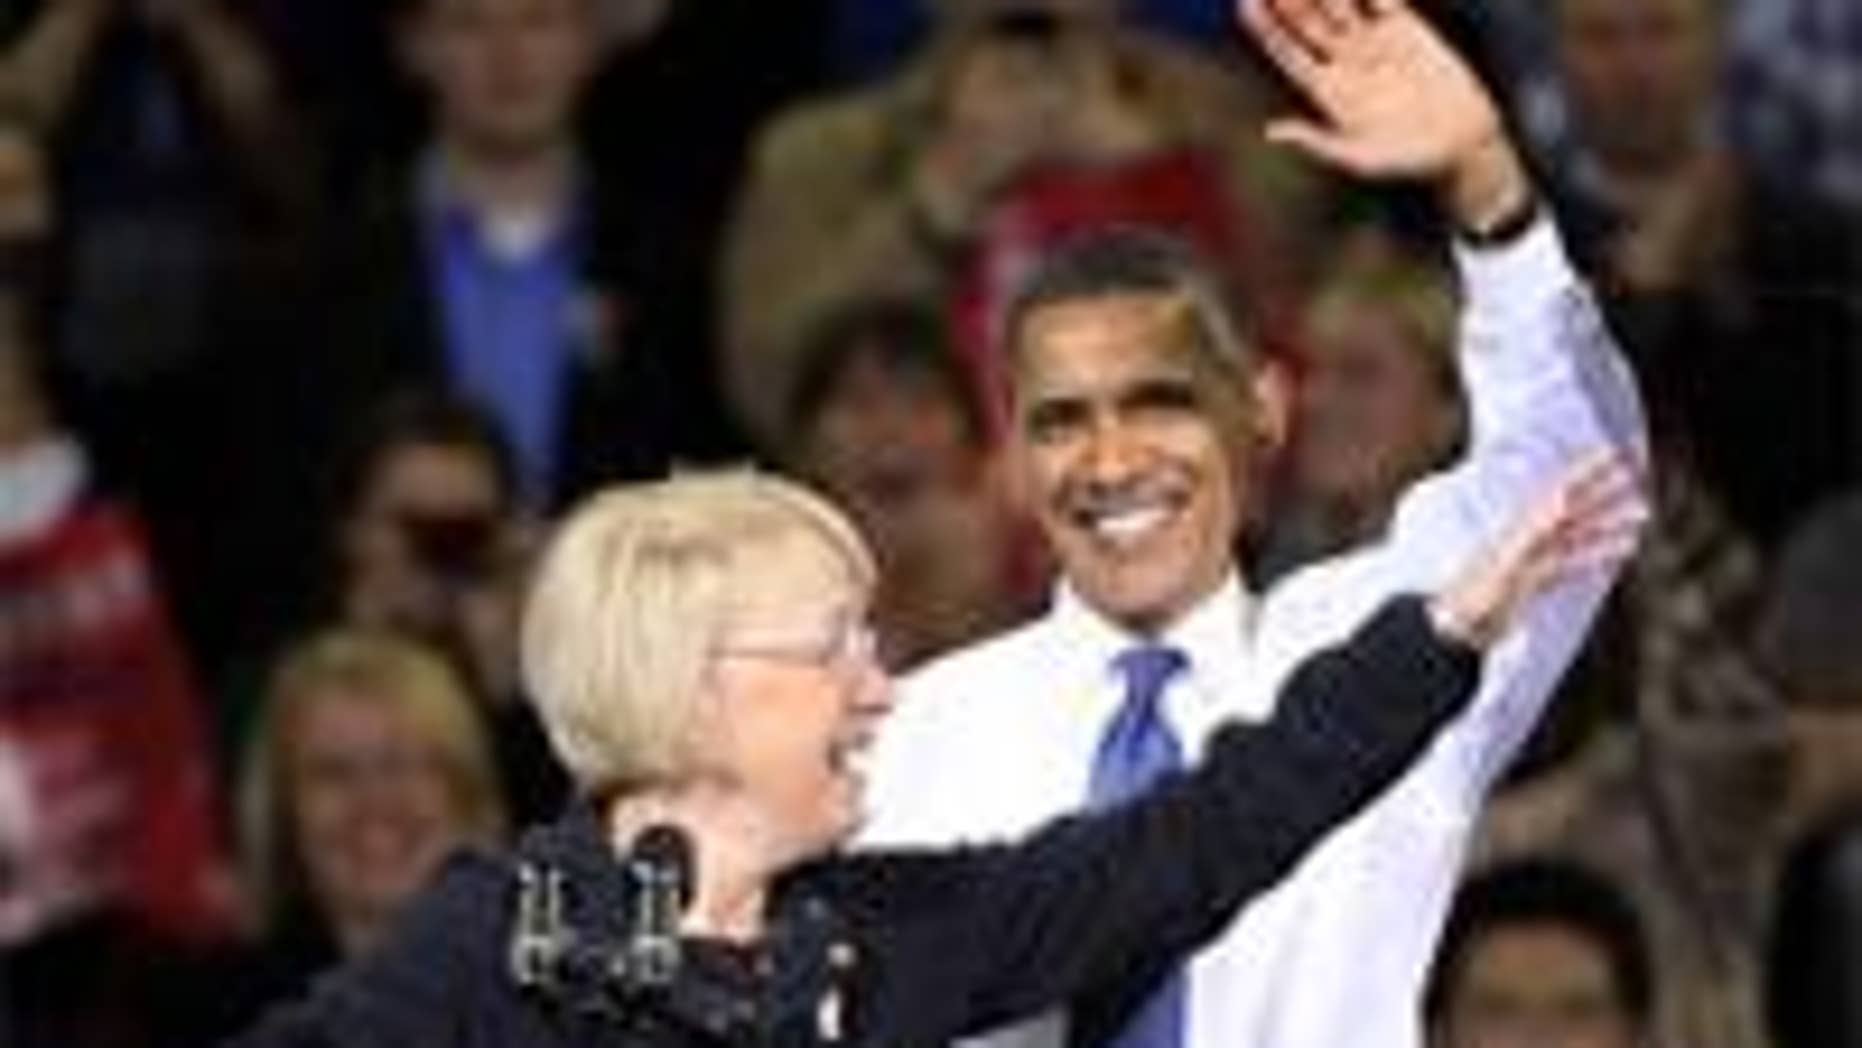 President Barack Obama and Sen. Patty Murray, D-Wash., wave during at a rally at the University of Washington in Seattle, Thursday, Oct. 21, 2010. (AP Photo)